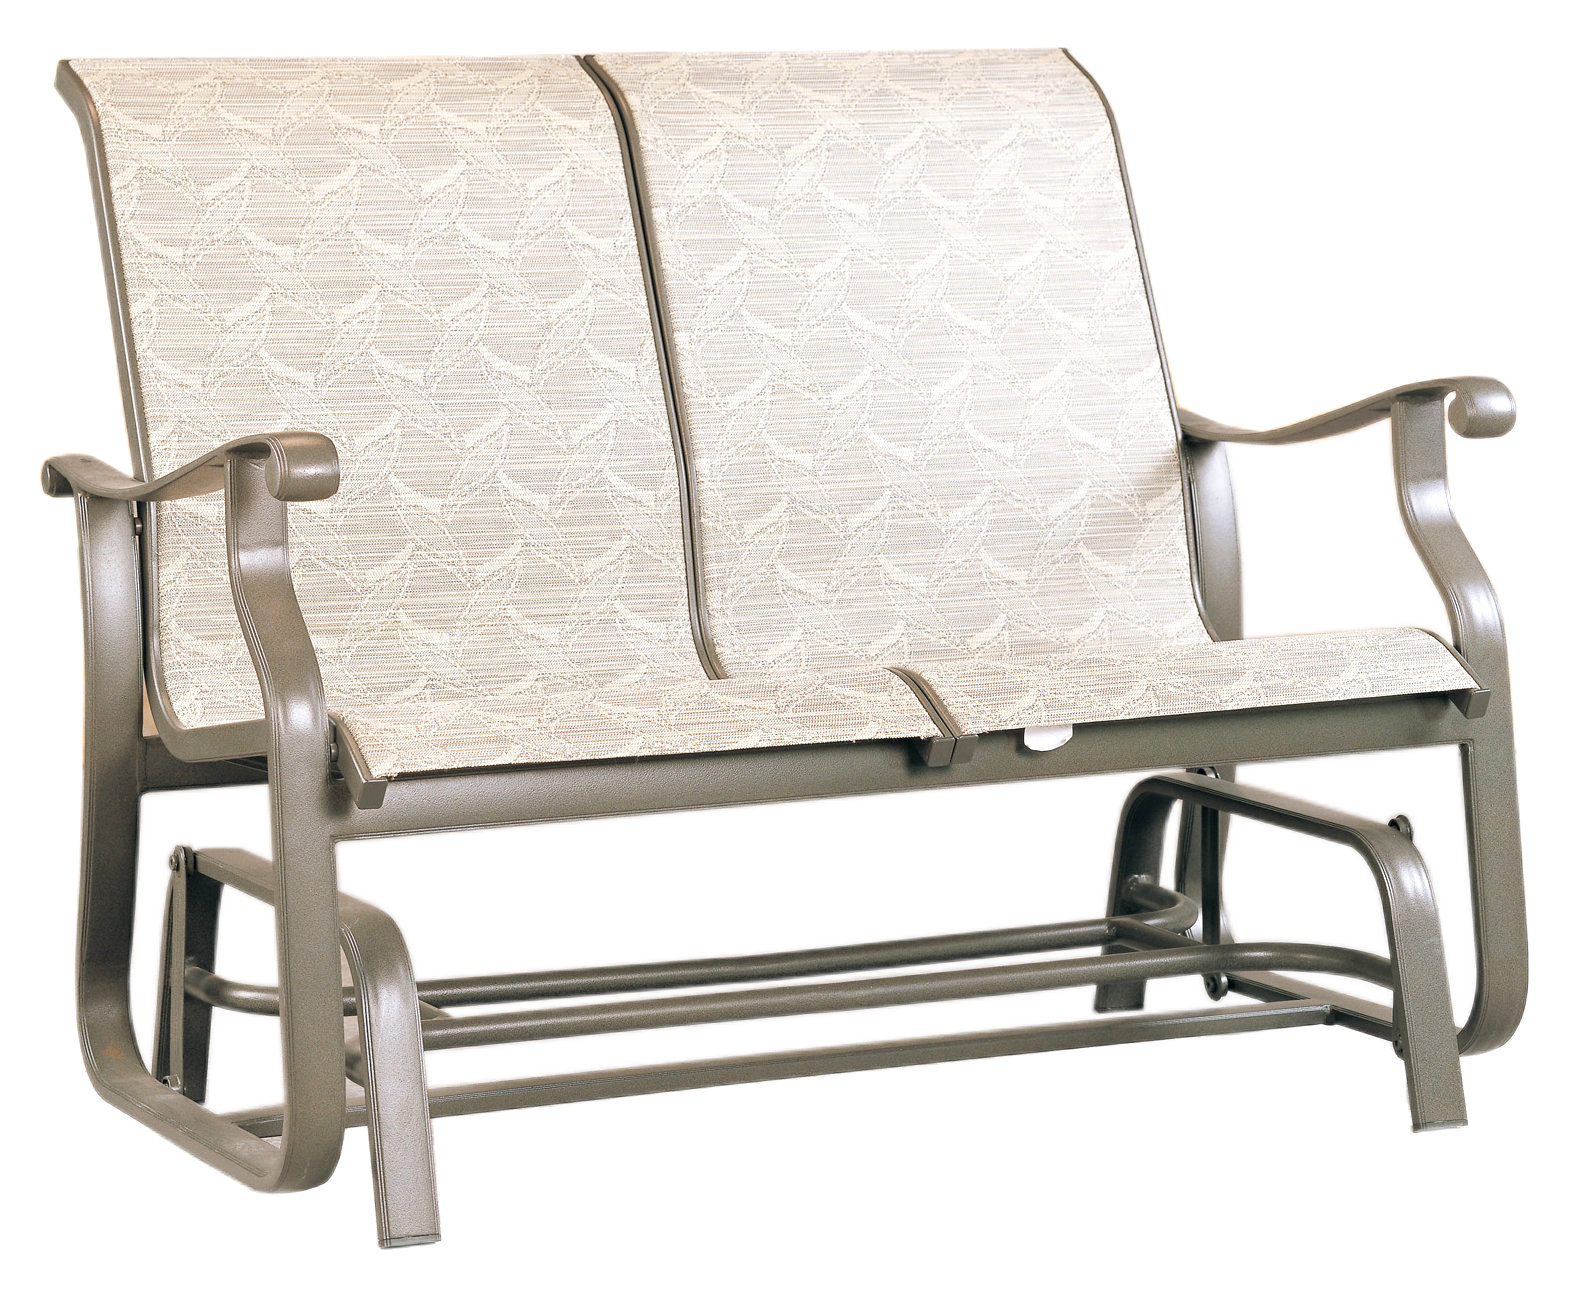 "970565 Mandalay Double Glider   48.8"" x 30"" x 36.8"""